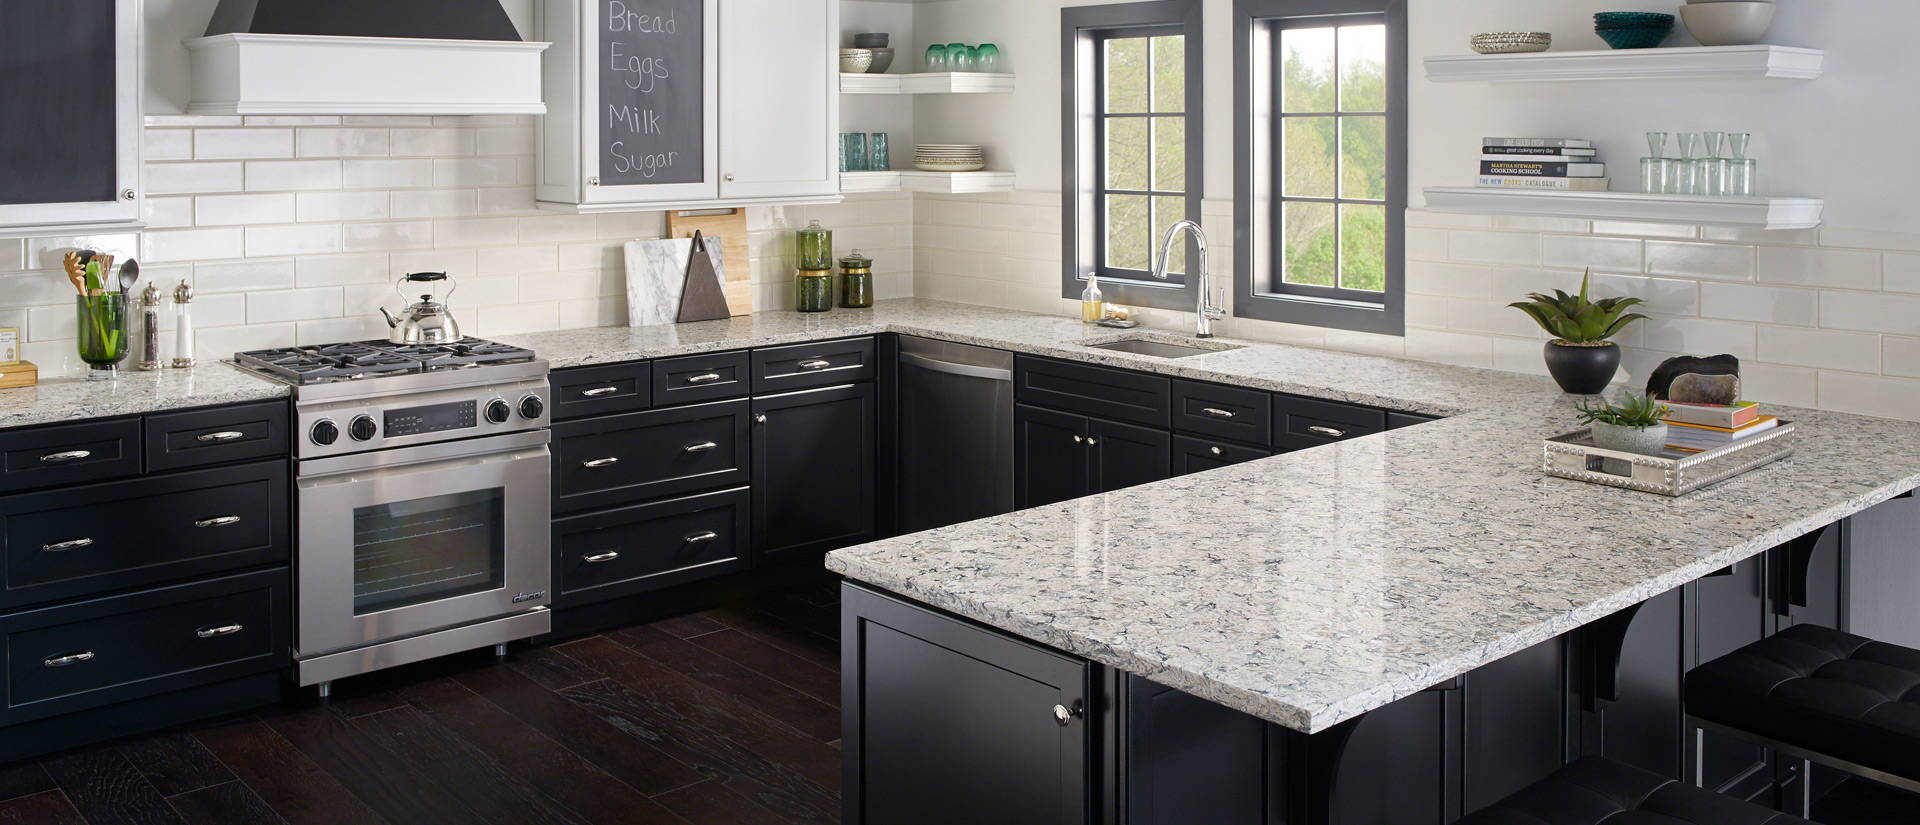 INSTALLATION countertops Omaha